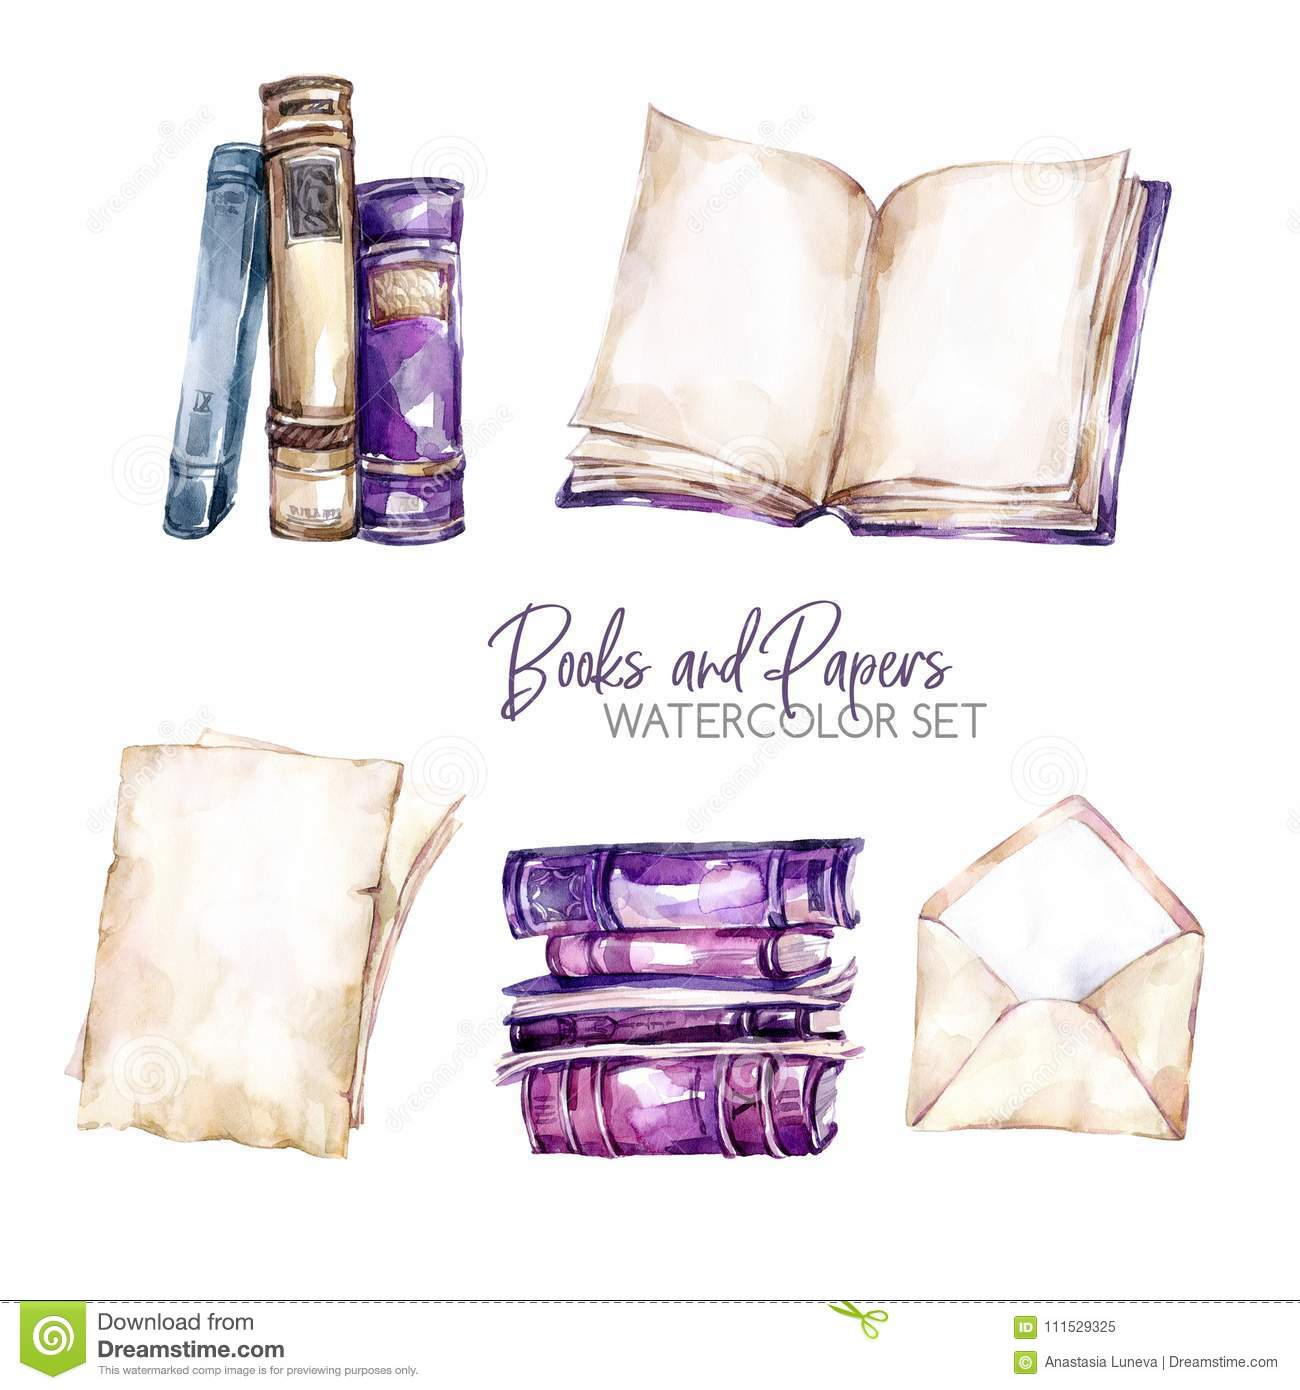 Watercolor borders set with old books, envelope and paper sheets. Original hand drawn illustration in violet shades